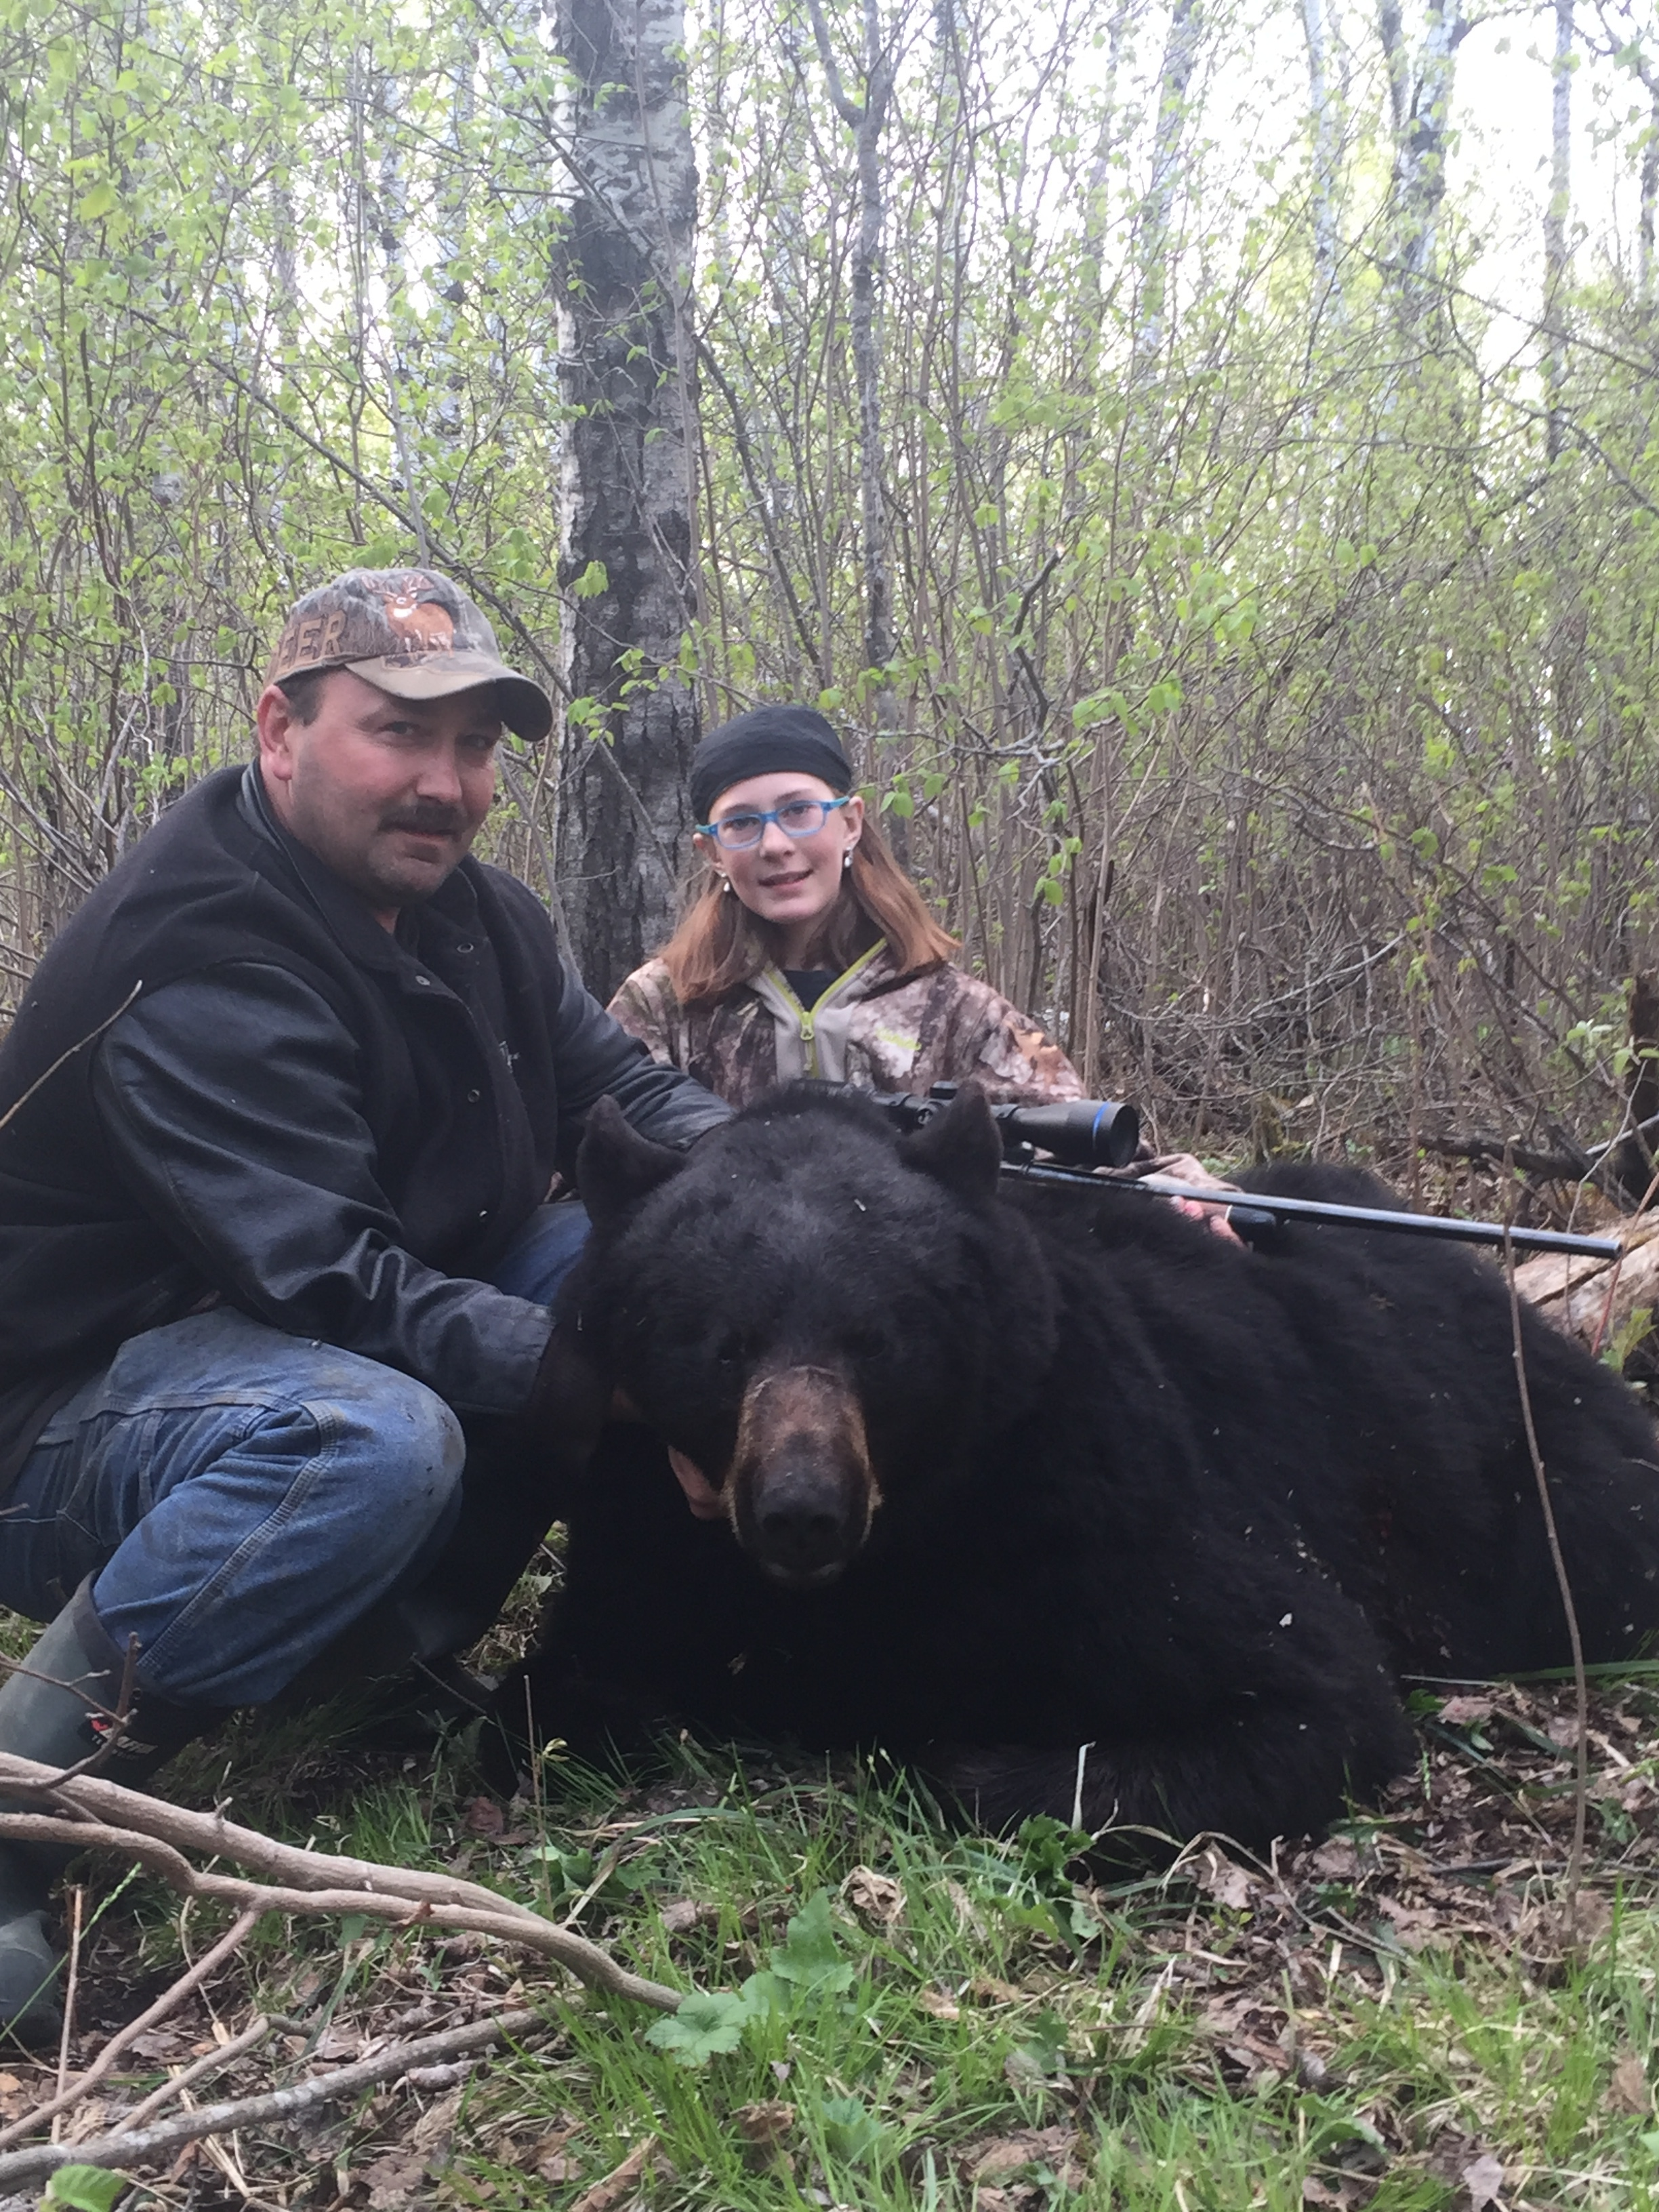 Richard and daughter pose with bear after a sucsessful hunt.